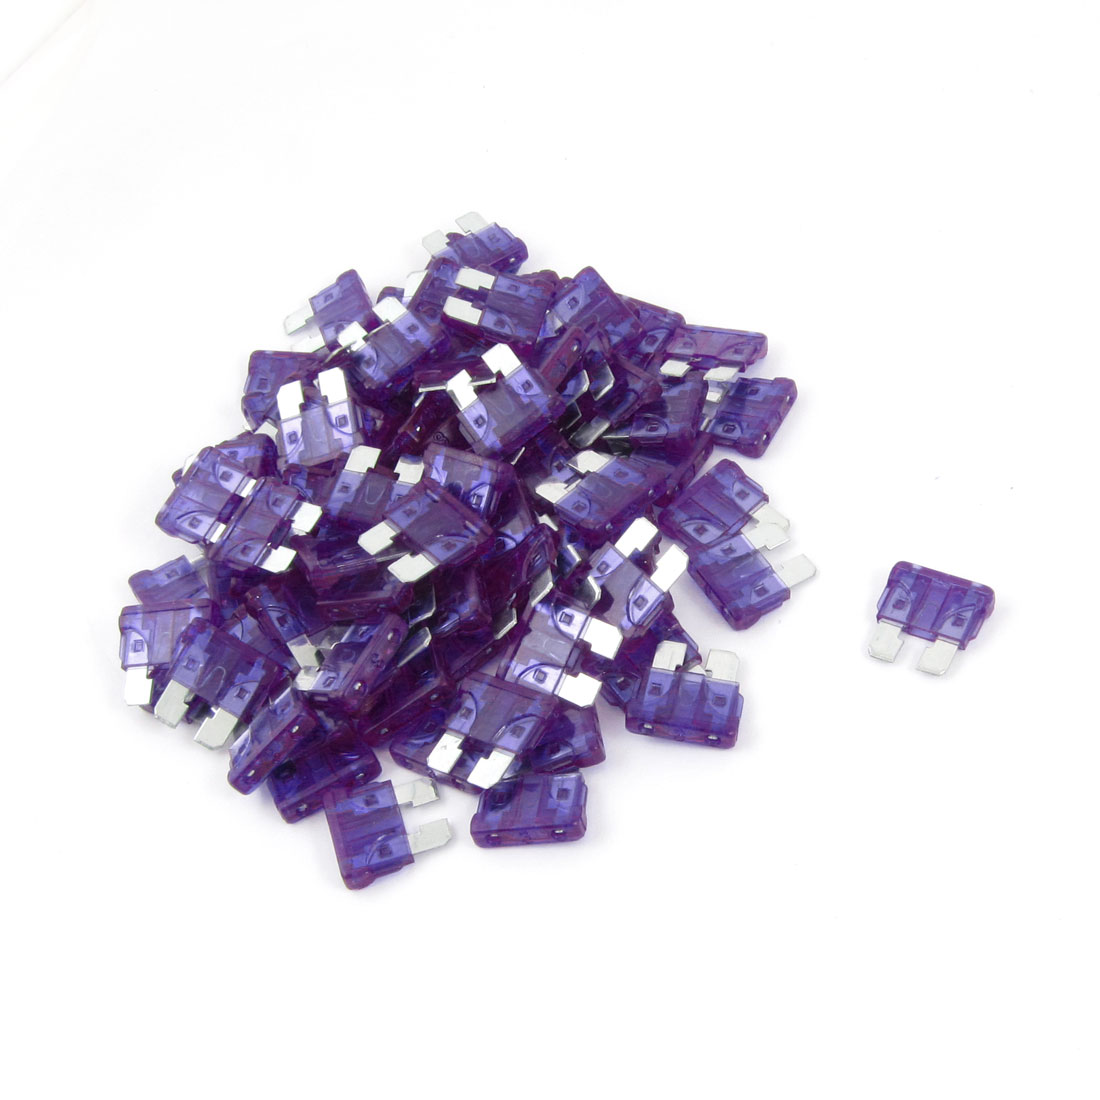 100 Pcs Auto Car Purple Plastic Coated Mini Blade Fuses 3A